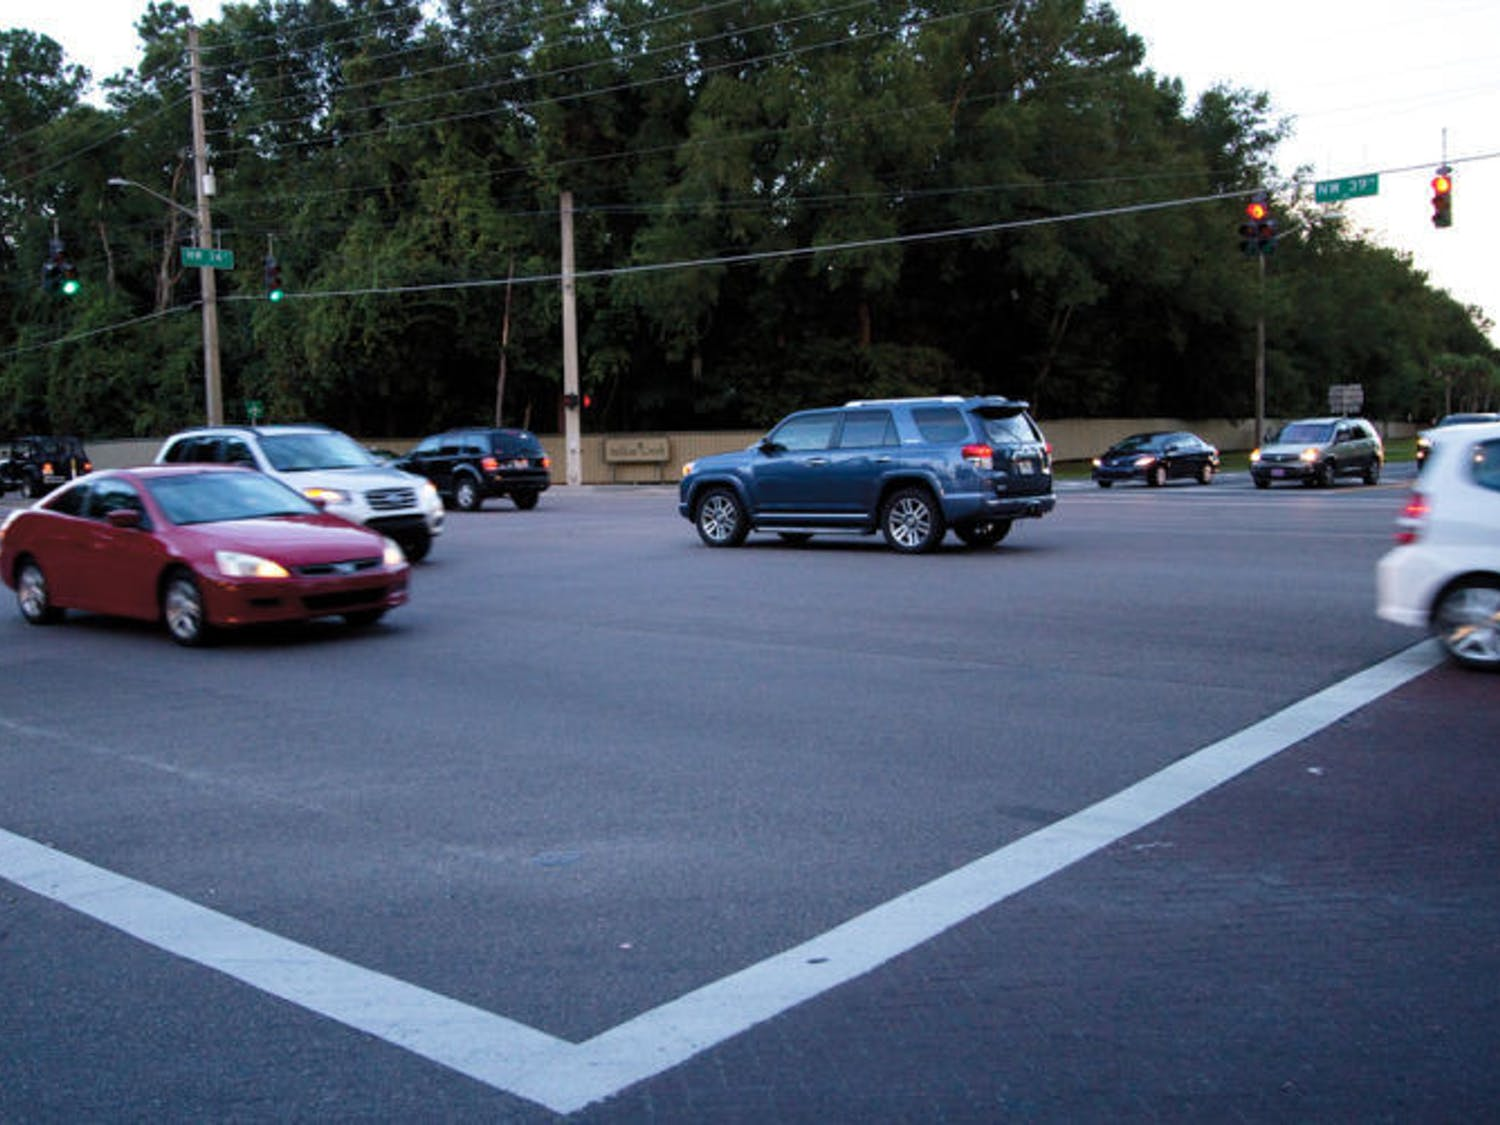 The intersection at Northwest 39th Avenue and Northwest 34th Street experiences traffic Monday. The City Commission received a complaint about accidents there.